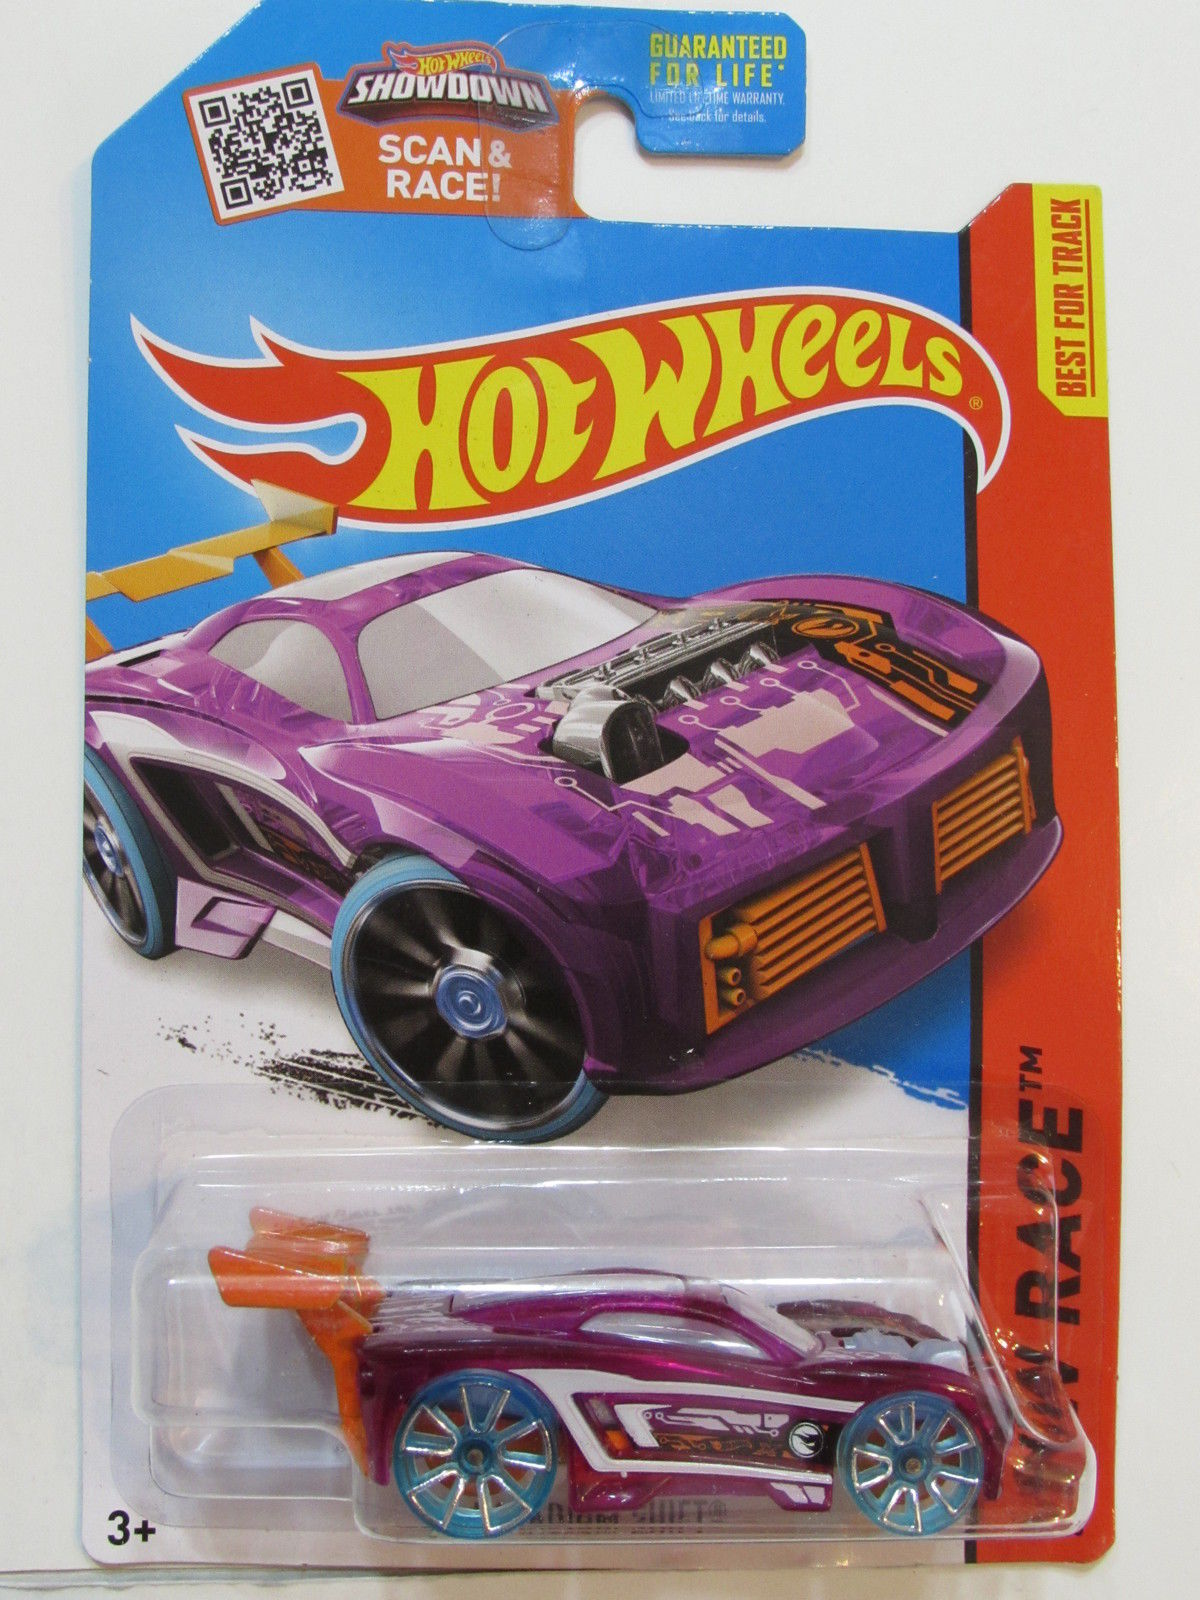 HOT WHEELS 2015 HW RACE X- RAYCERS PARADIGM SHIFT - TREASURE HUNT